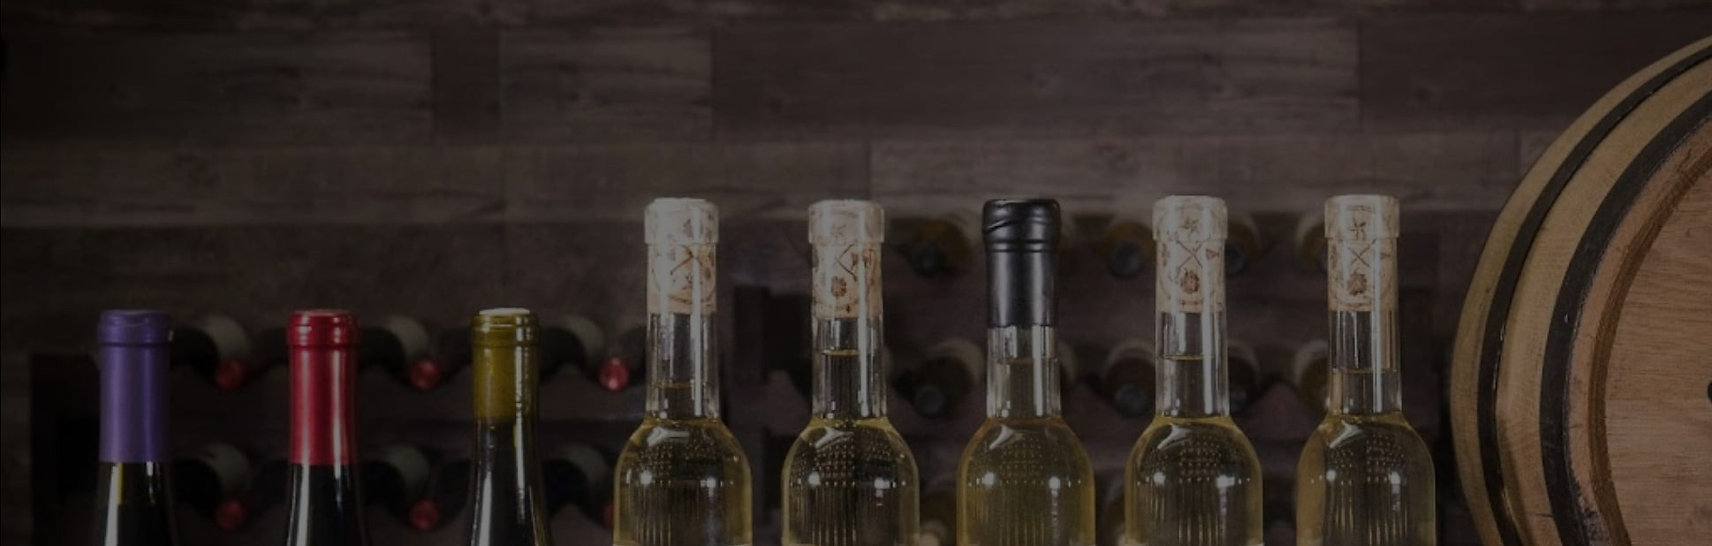 This banner image displays the corked tops of mead bottles and an aging barrel.